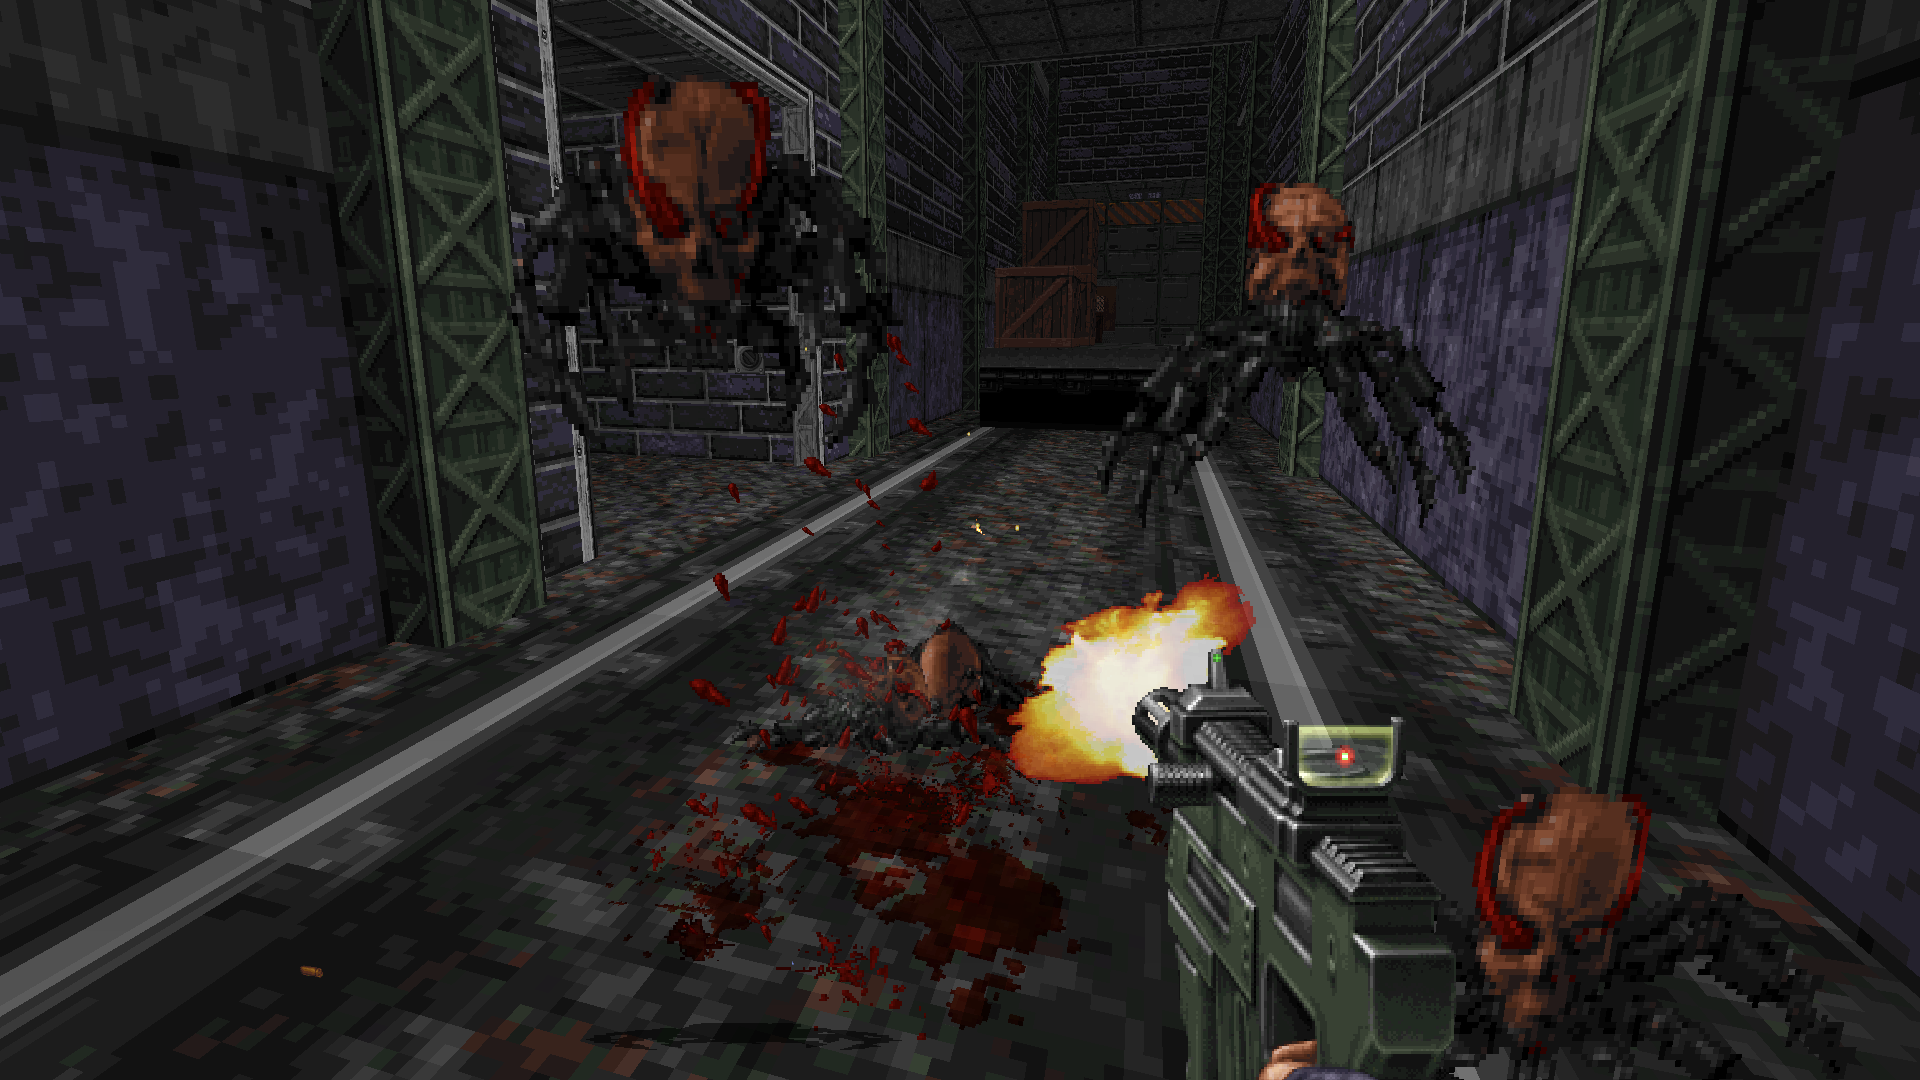 Duke Nukem's 22-year-old engine is powering a game today